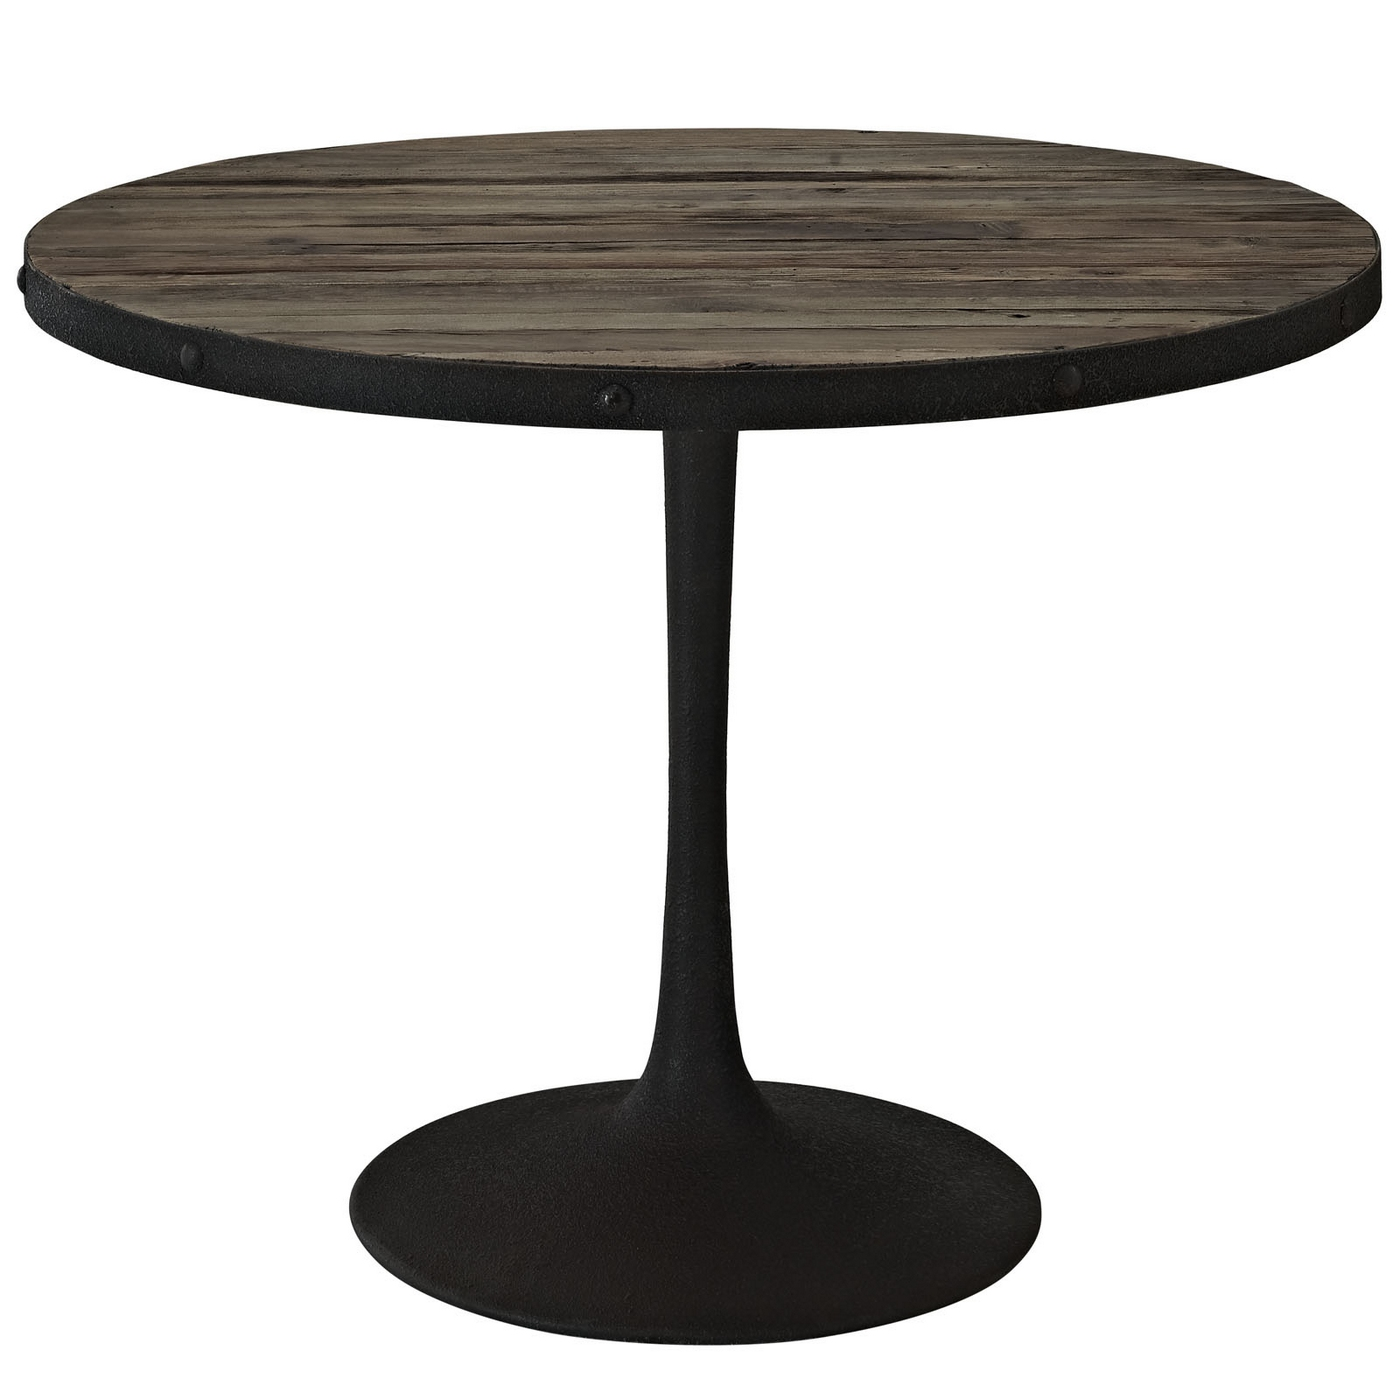 drive rustic 40 round wood top dining table with cast iron base brown. Black Bedroom Furniture Sets. Home Design Ideas